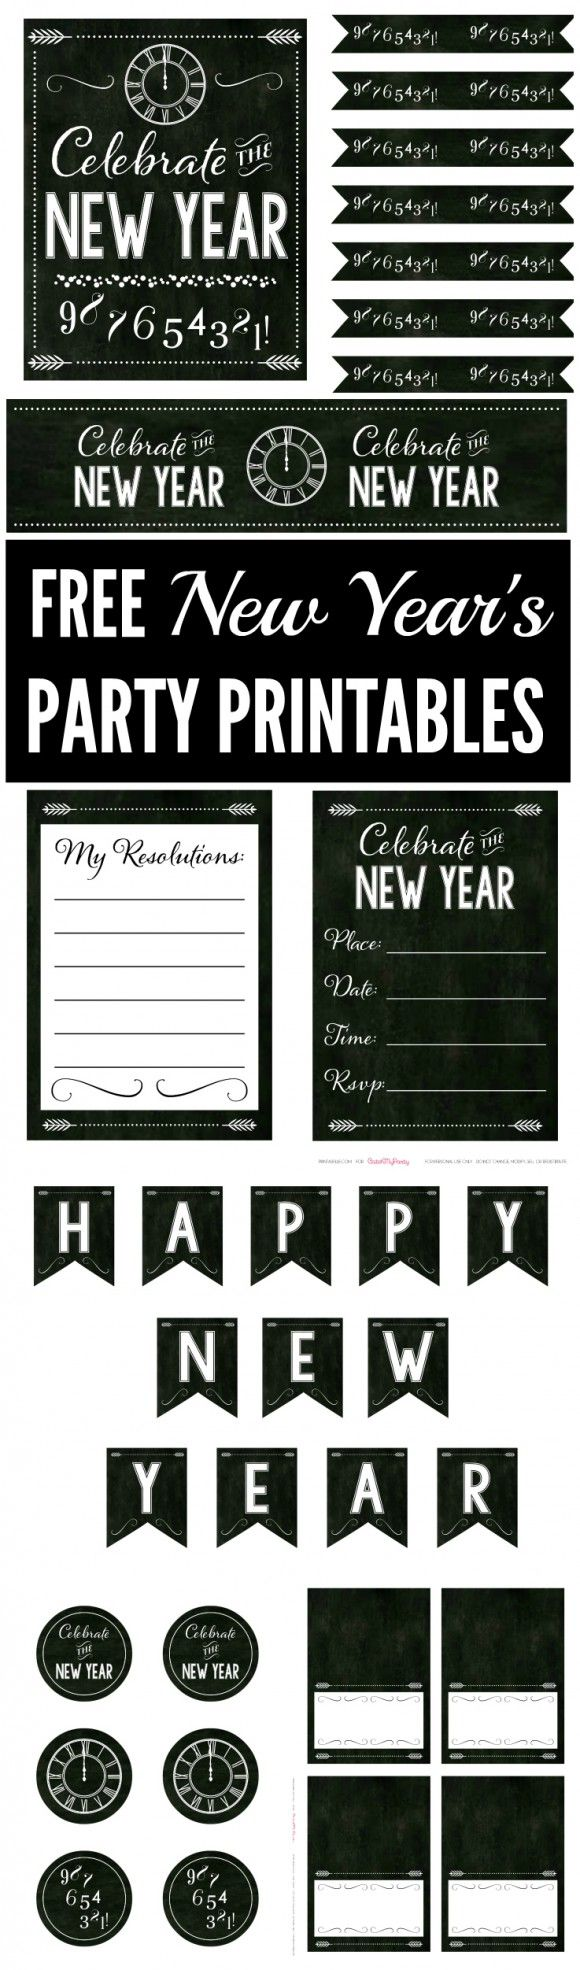 Free Chalkboard New Year's Party Printables filled with everything you need to throw a great New Year's Eve party or New Year's day party!   CatchMyParty.com